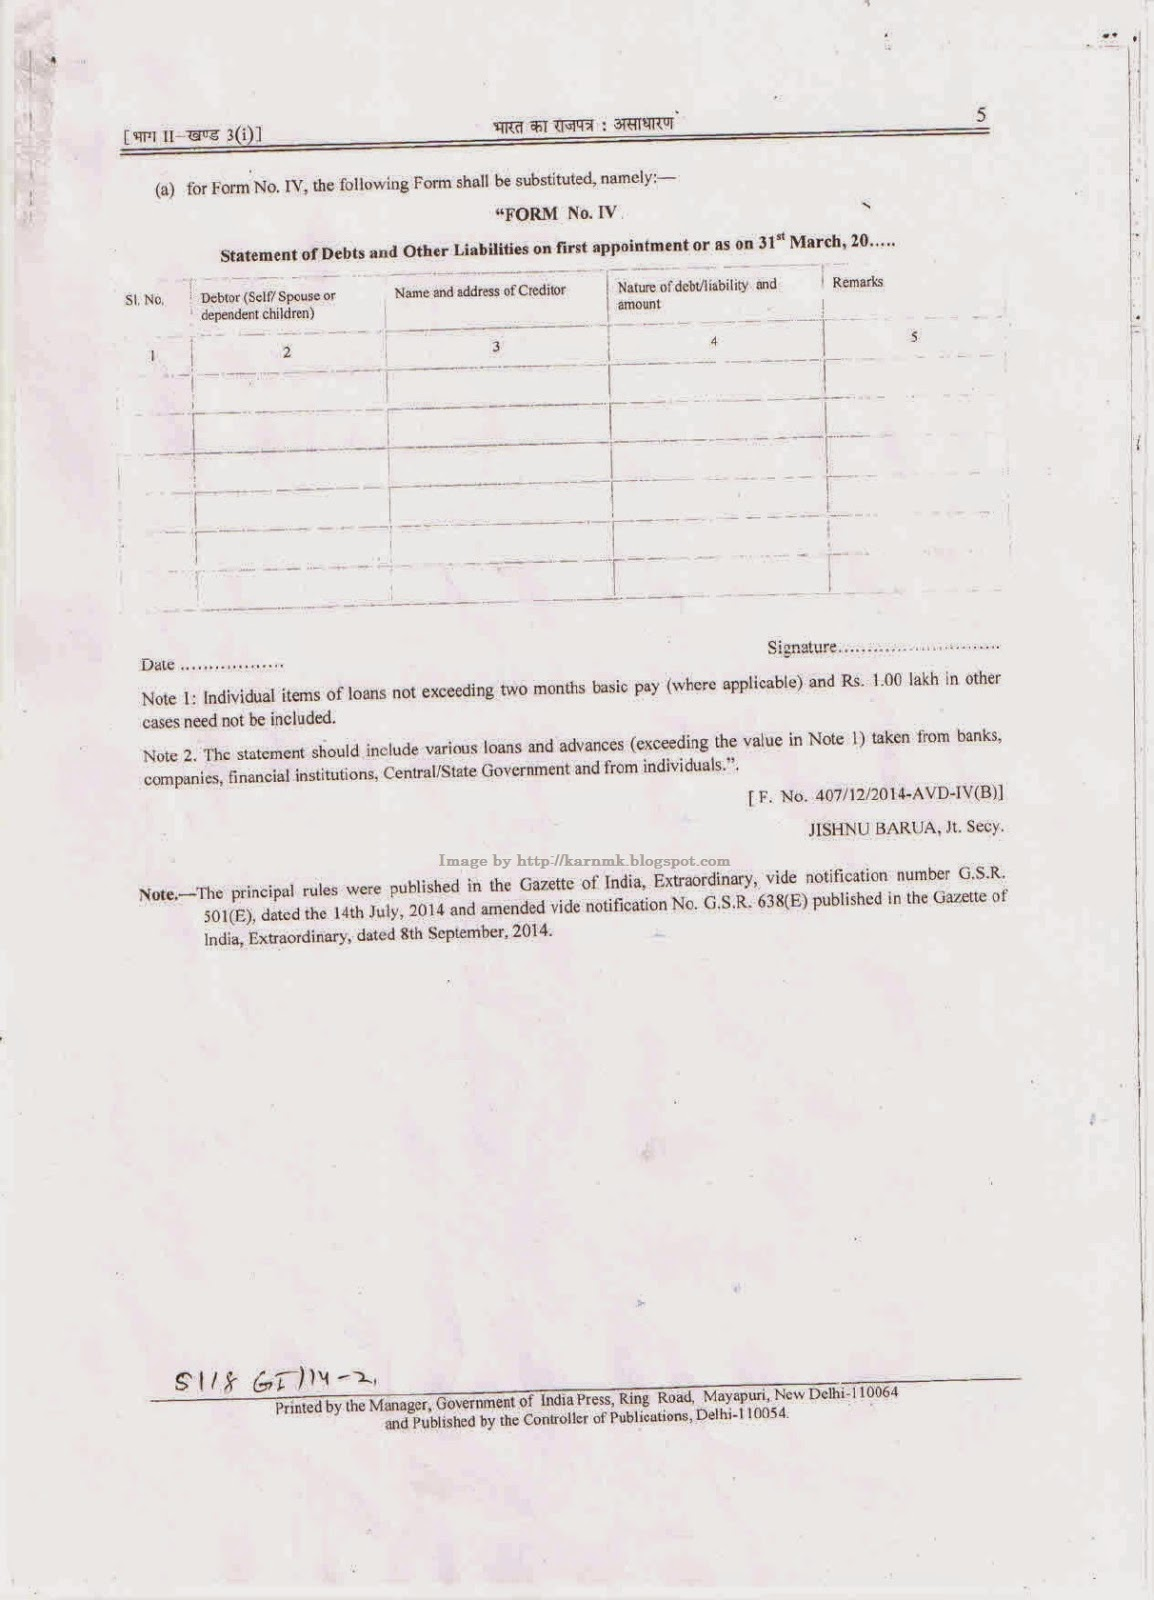 Assets And Liabilities Return Under Lokpal Revised Format Of Form Ii Amp Iv Notified